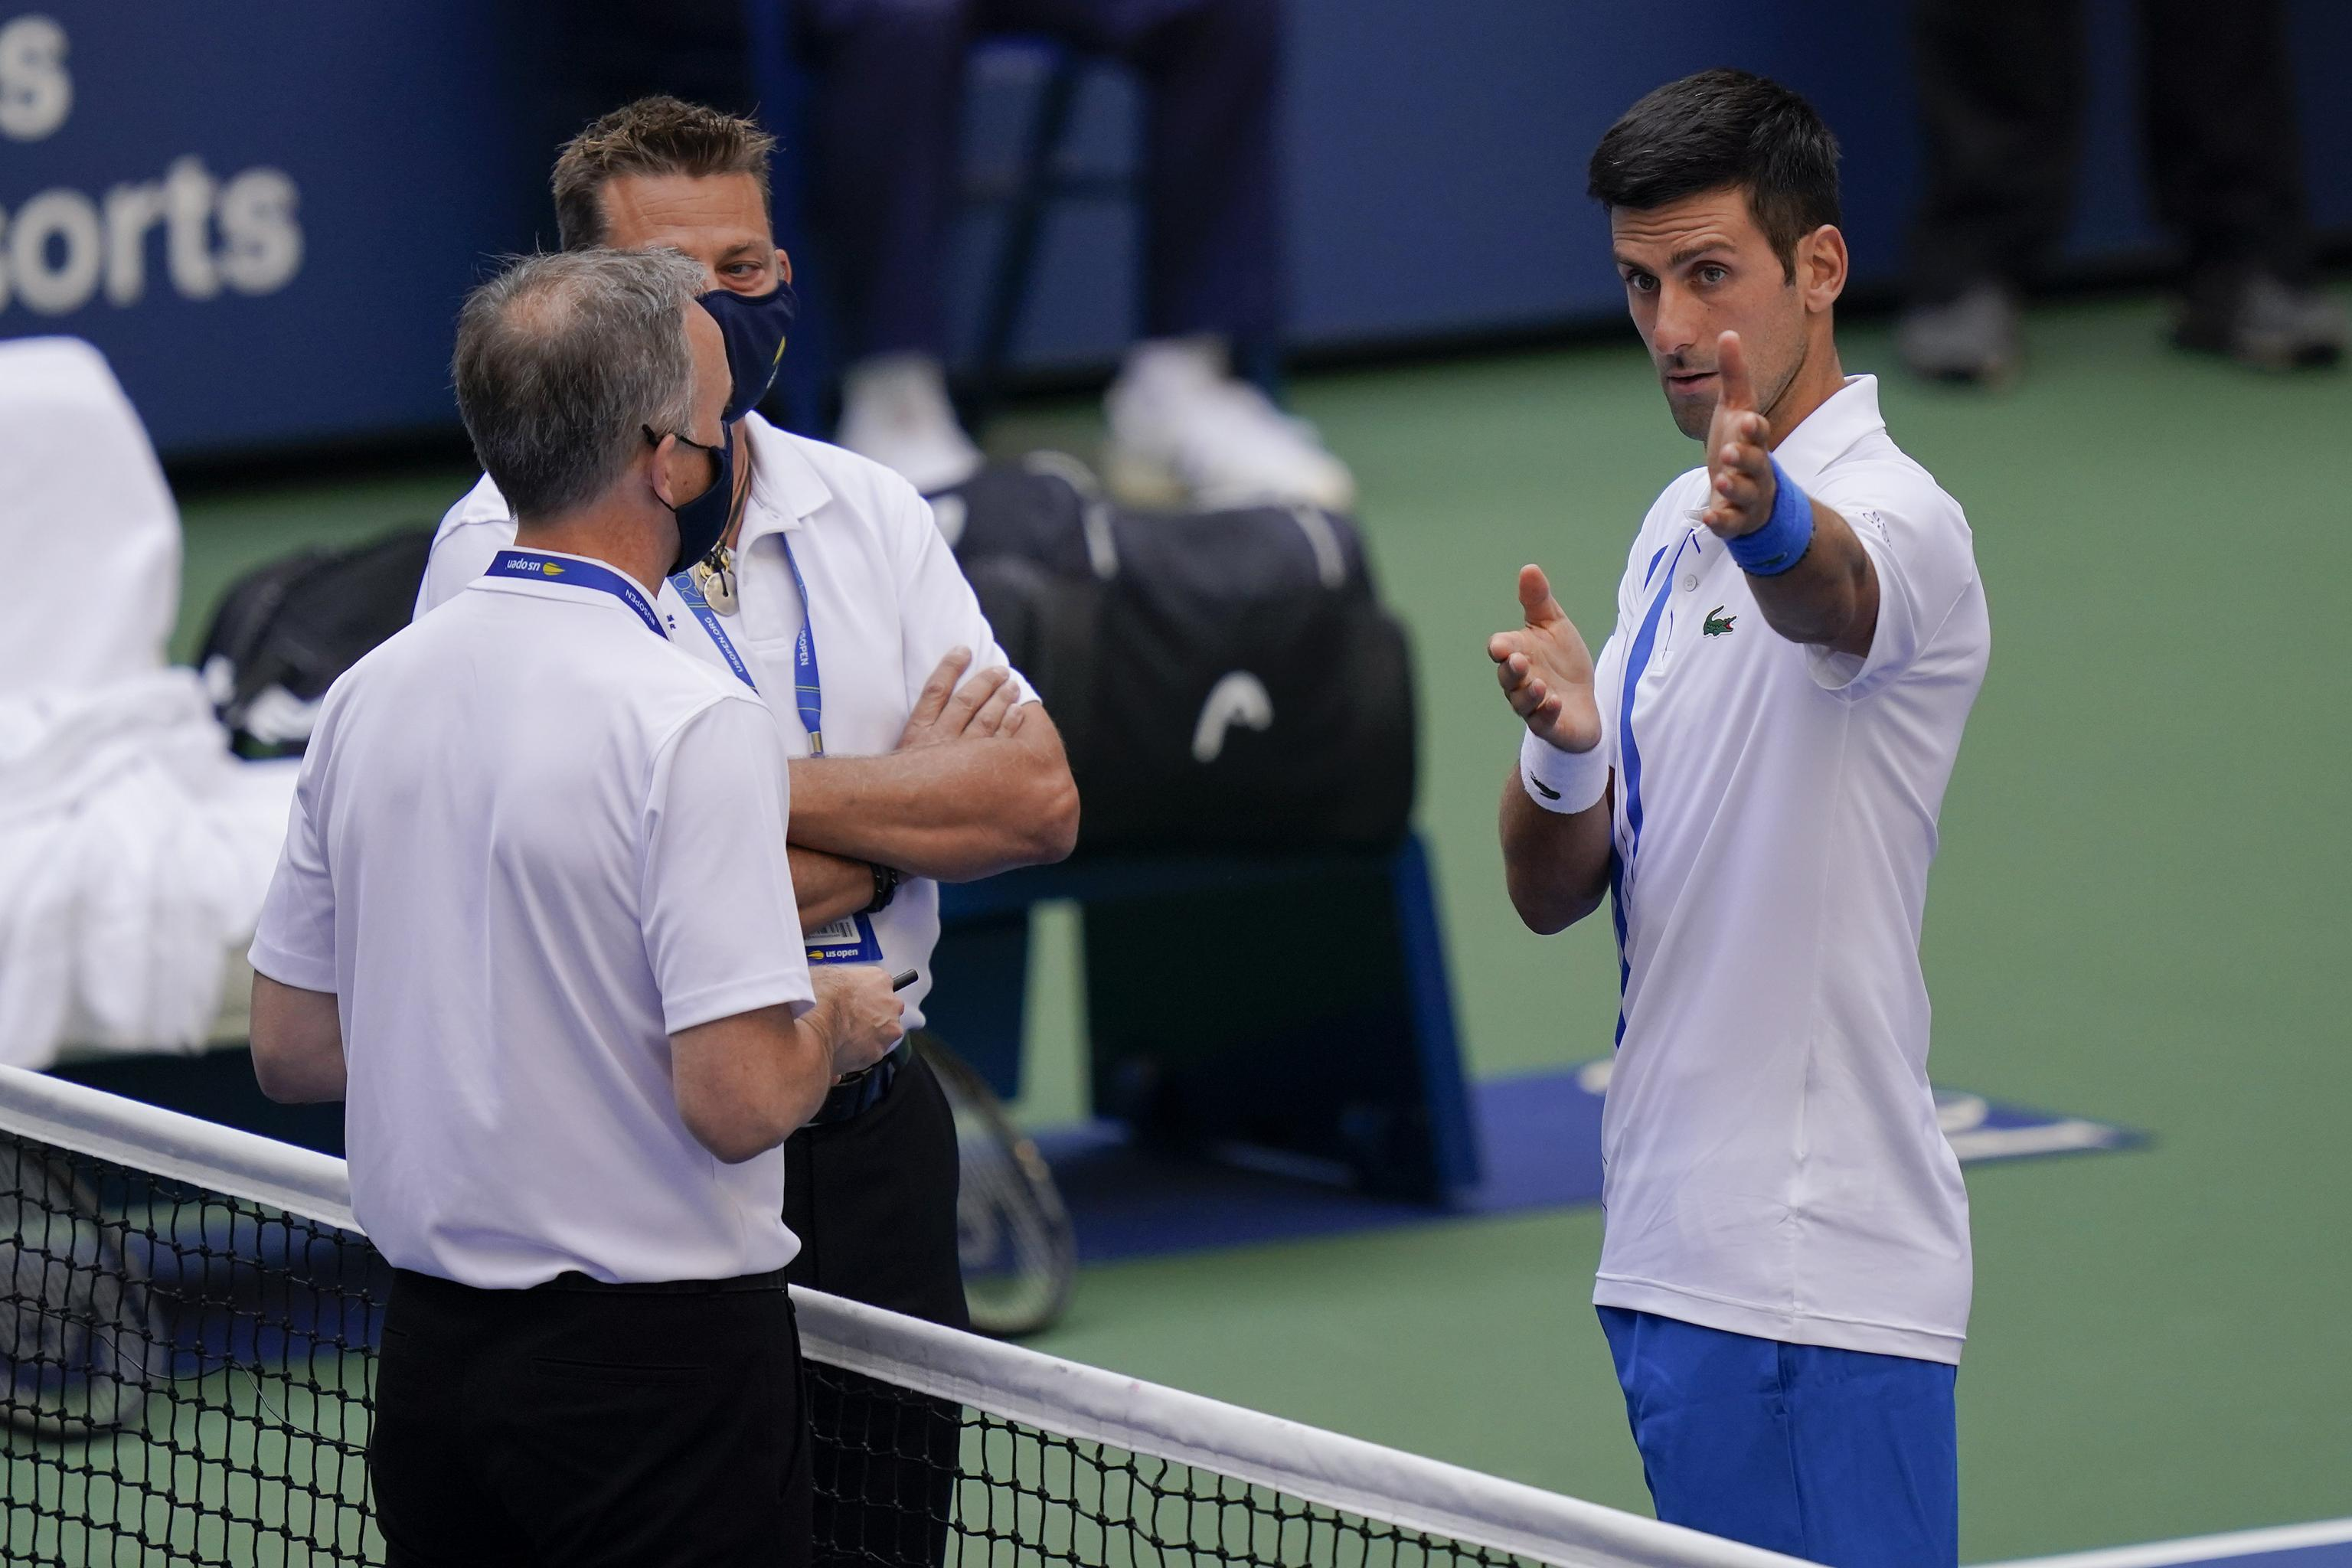 Novak Djokovic Says He Can T Guarantee He Won T Hit Somebody Again With Ball Bleacher Report Latest News Videos And Highlights